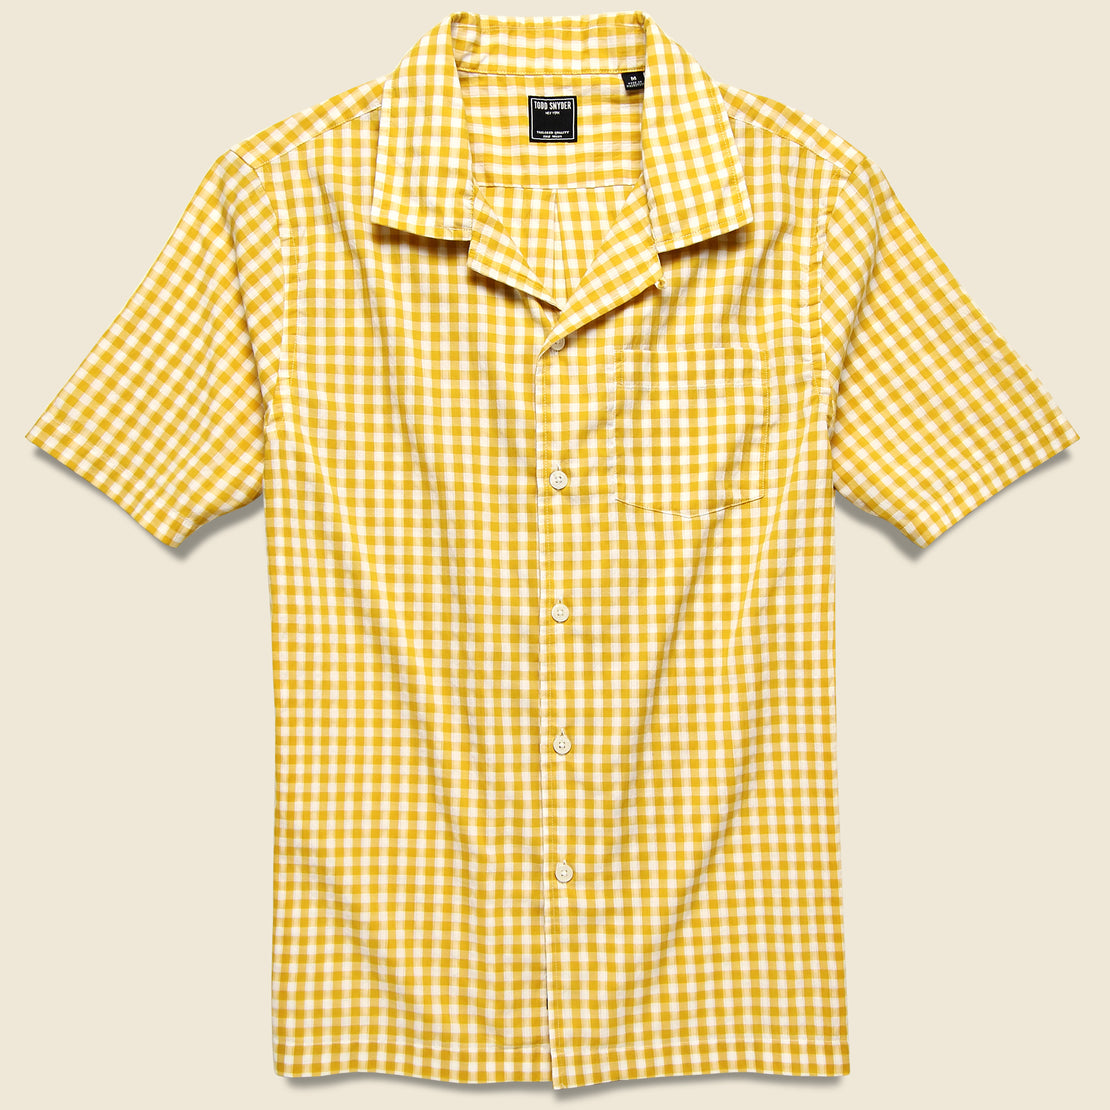 Todd Snyder Micro Gingham Camp Shirt - Yellow